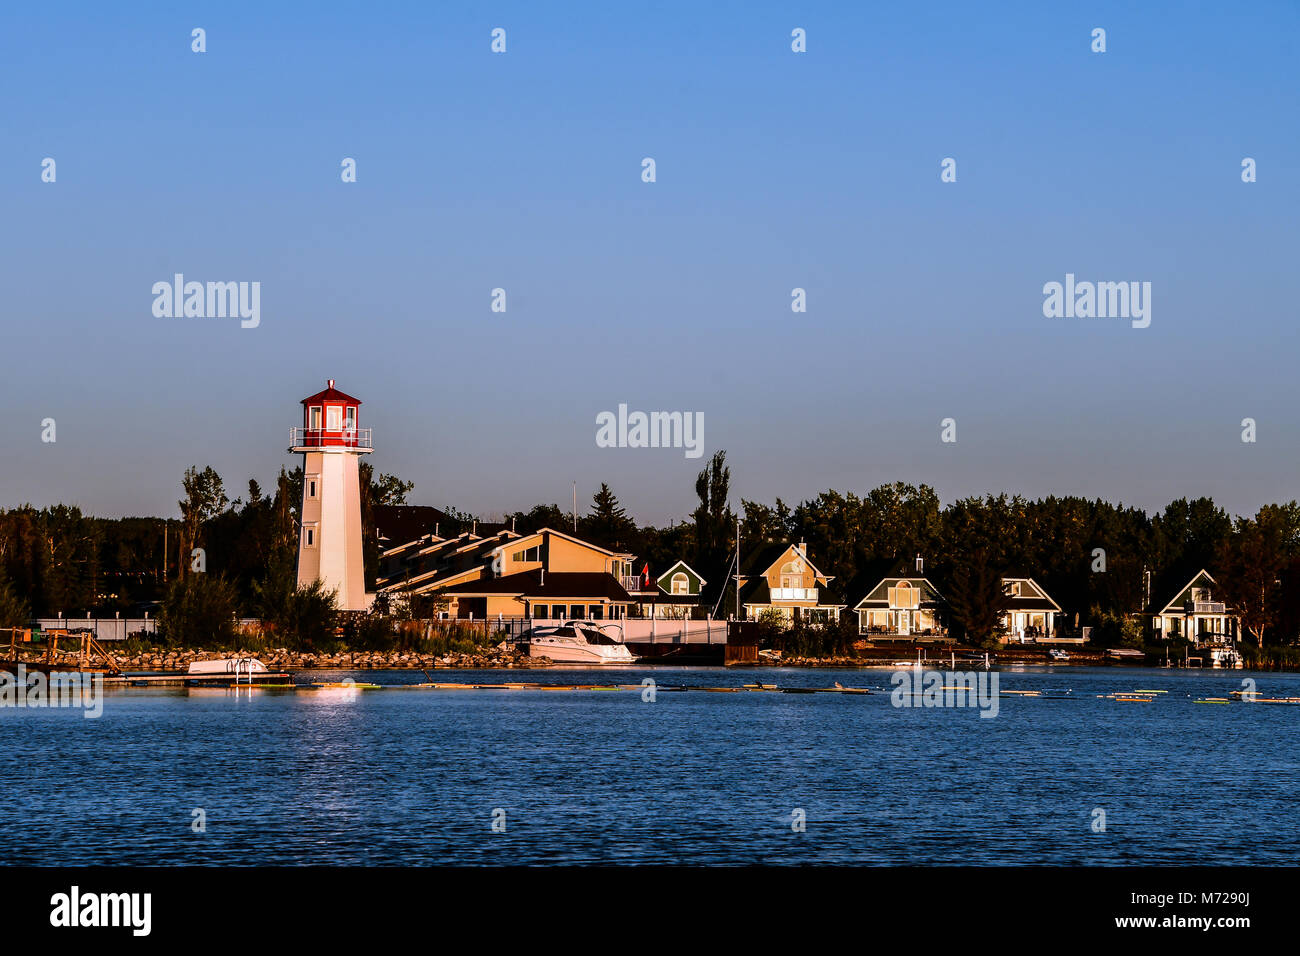 red and white lighthouse in sylvan lake alberta canada. Black Bedroom Furniture Sets. Home Design Ideas